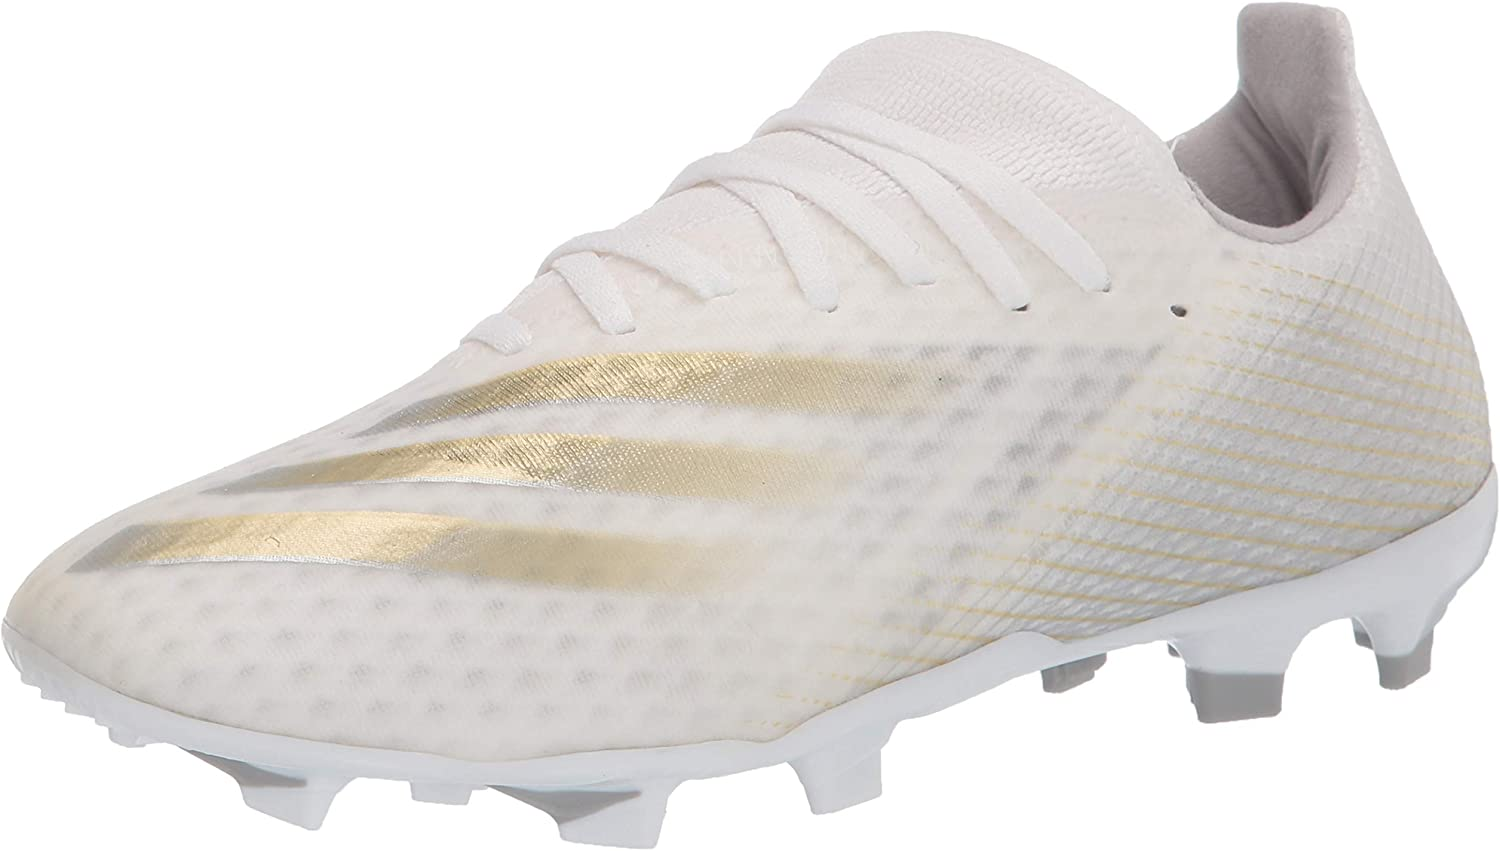   adidas Men's X GHOSTED.3 Soccer Shoe   Soccer